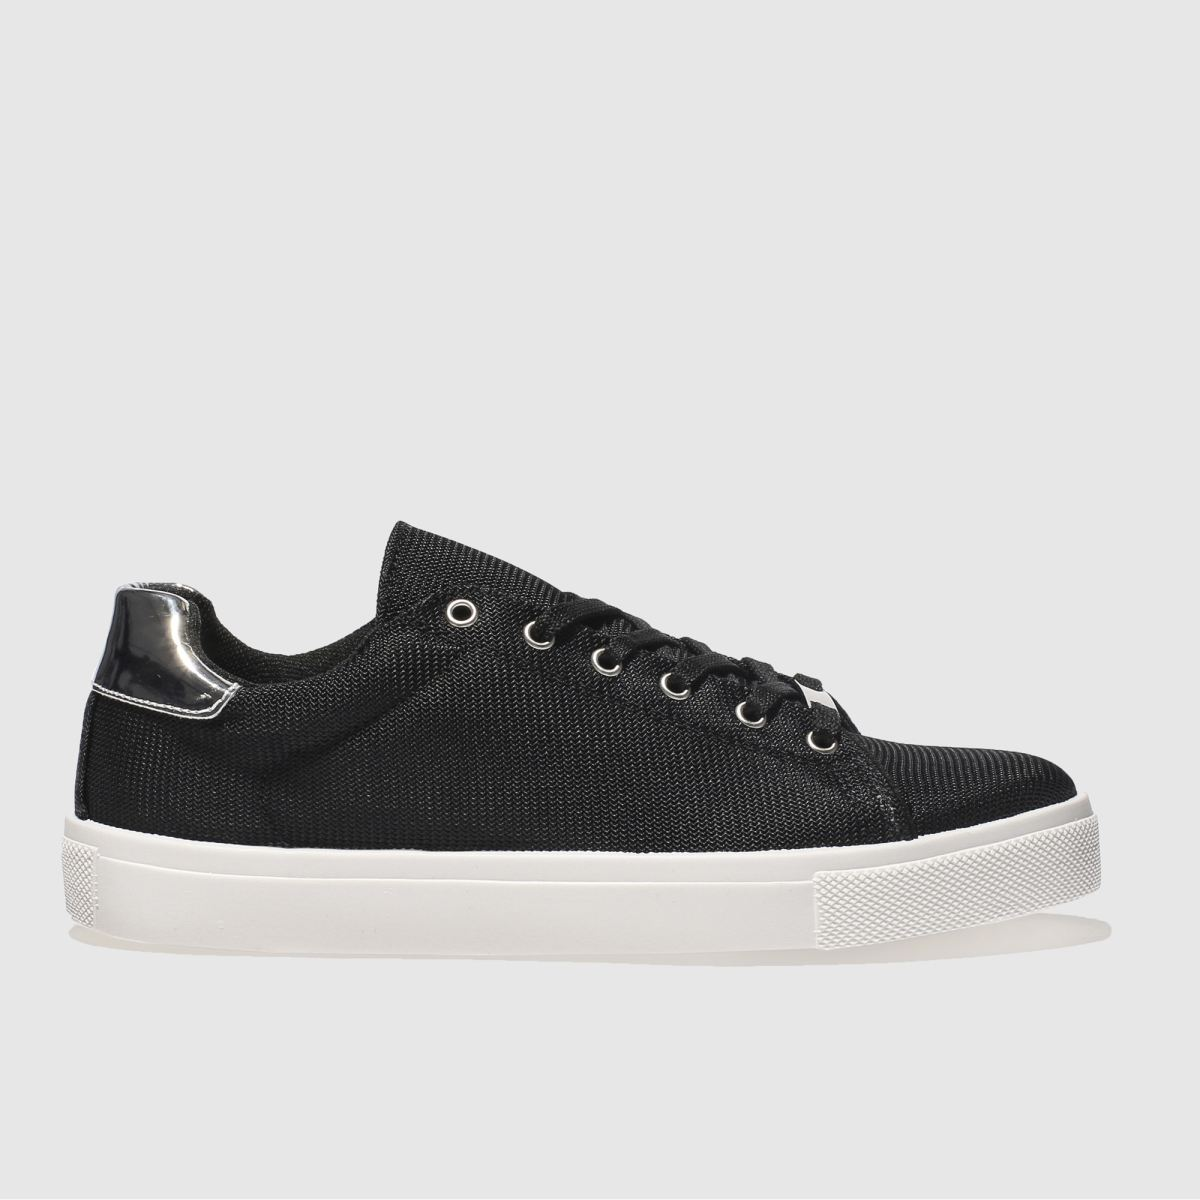 Schuh Black & White Rising Star Trainers